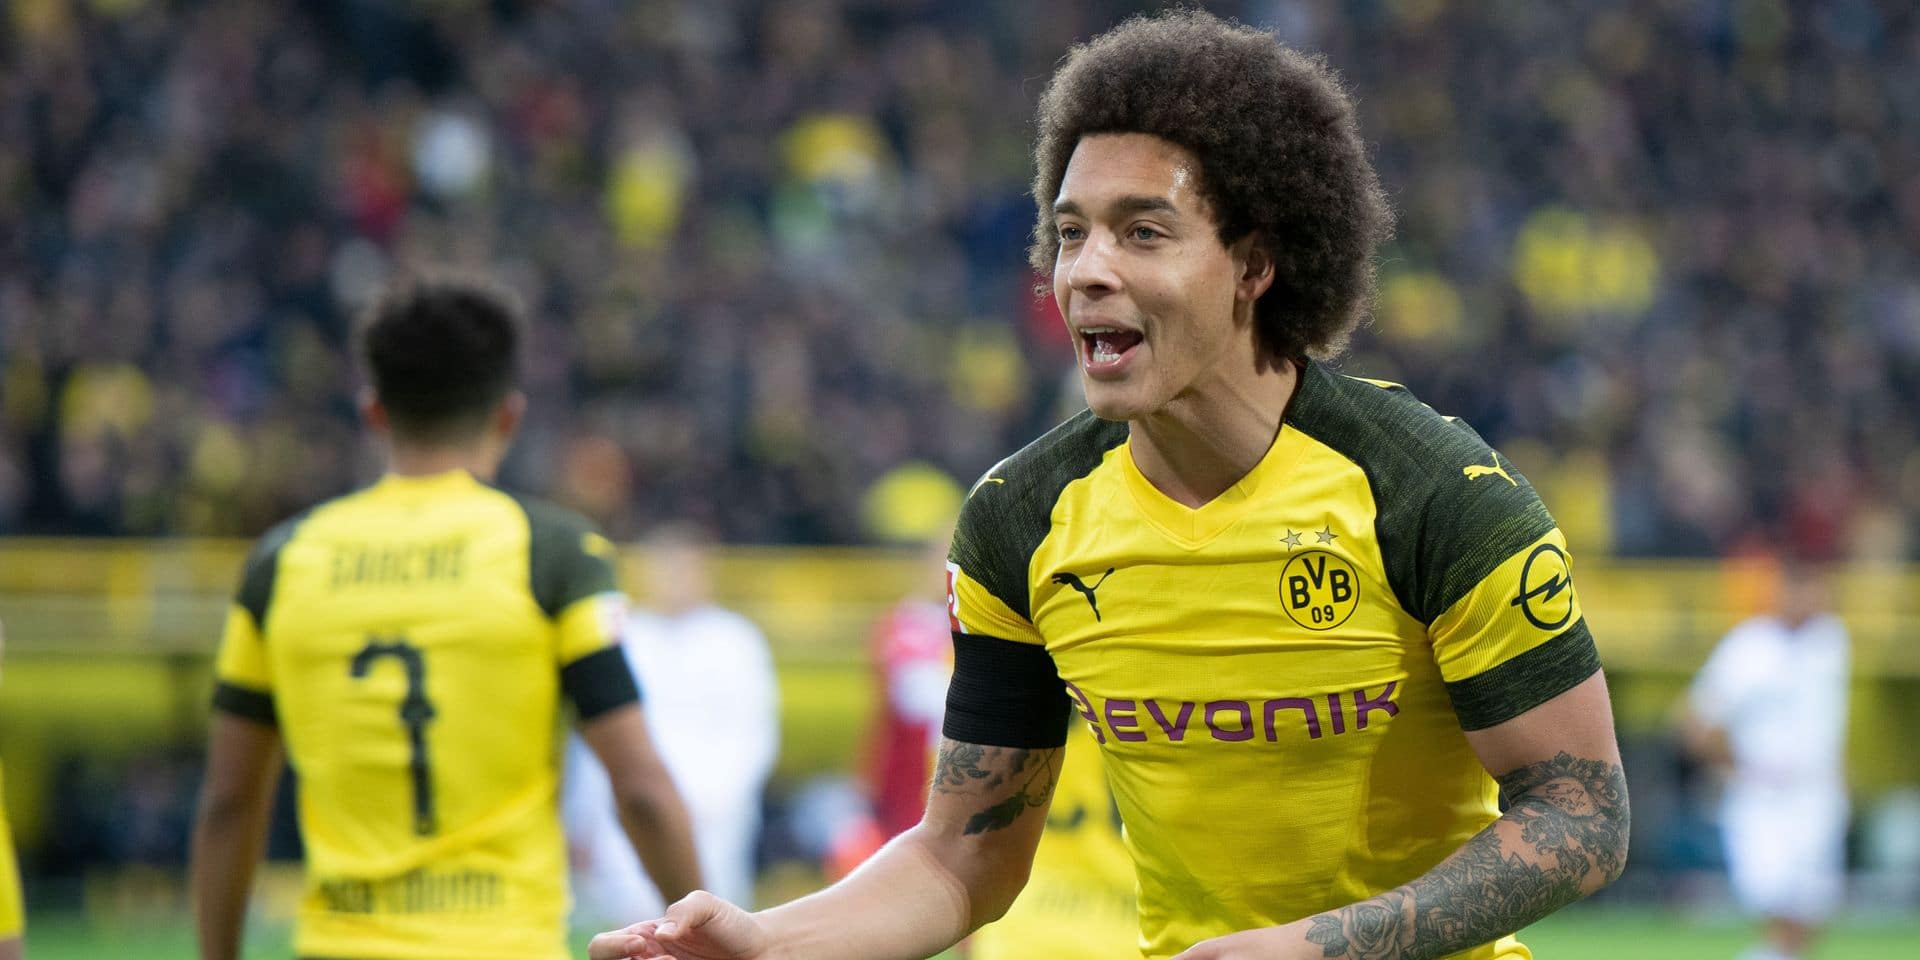 09 February 2019, North Rhine-Westphalia, Dortmund: Soccer: Bundesliga, Borussia Dortmund - 1899 Hoffenheim, 21st matchday at Signal Iduna Park: Dortmund's Axel Witsel. Photo: Bernd Thissen/dpa - IMPORTANT NOTE: In accordance with the requirements of the DFL Deutsche Fußball Liga or the DFB Deutscher Fußball-Bund, it is prohibited to use or have used photographs taken in the stadium and/or the match in the form of sequence images and/or video-like photo sequences. Reporters / DPA